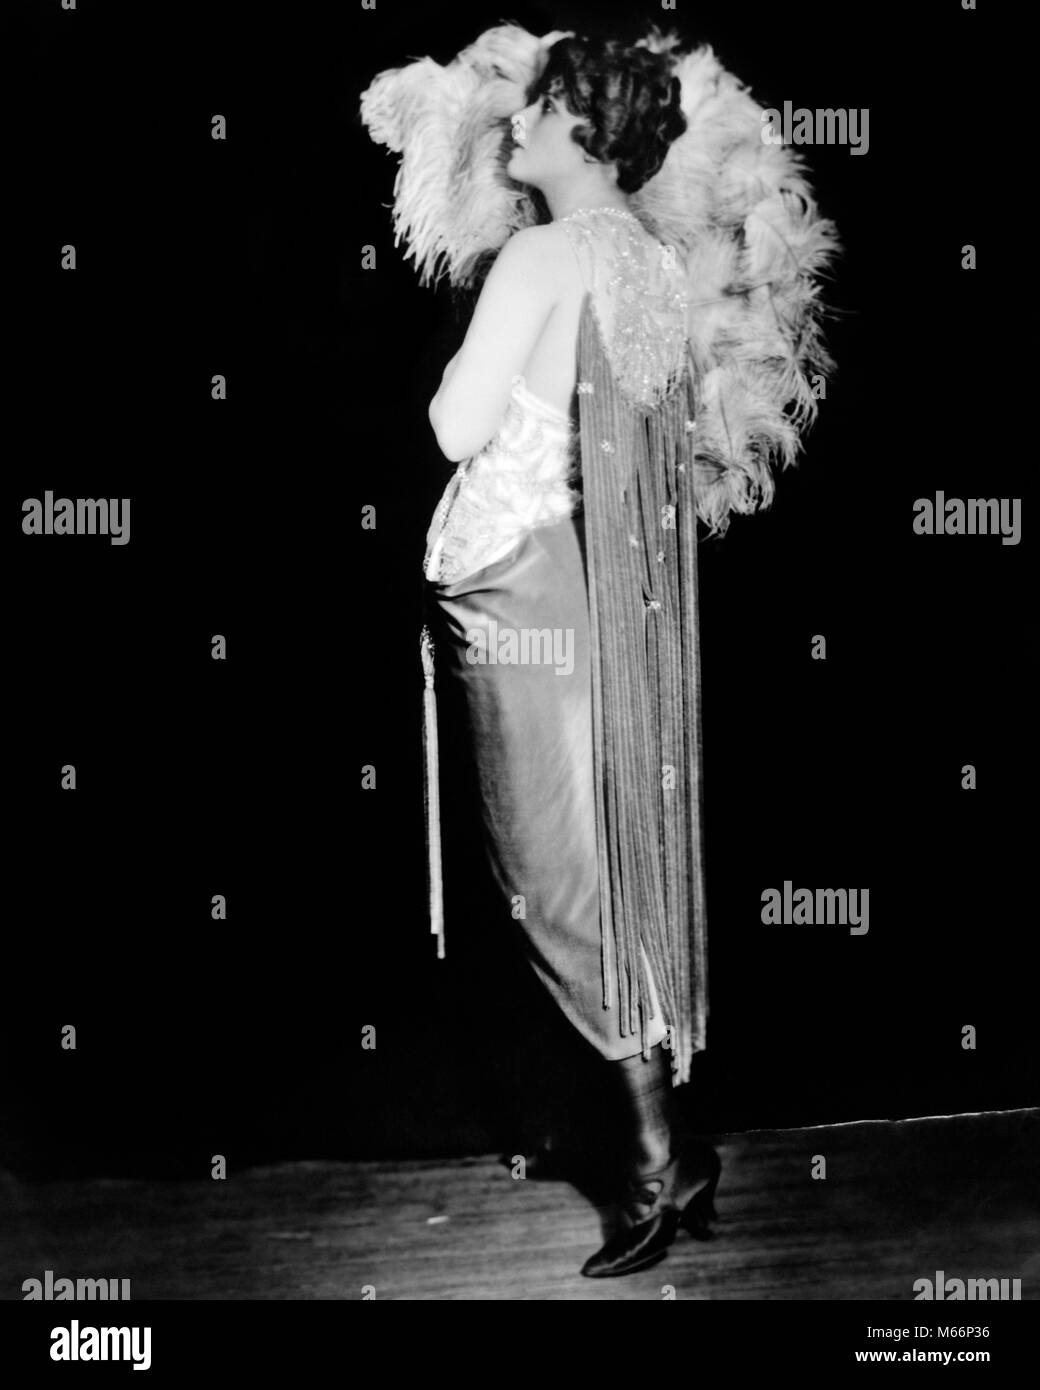 1920s MARGARET IRVING OF 1920 ZIEGFELD FOLLIES WOMAN PROFILE EVENING